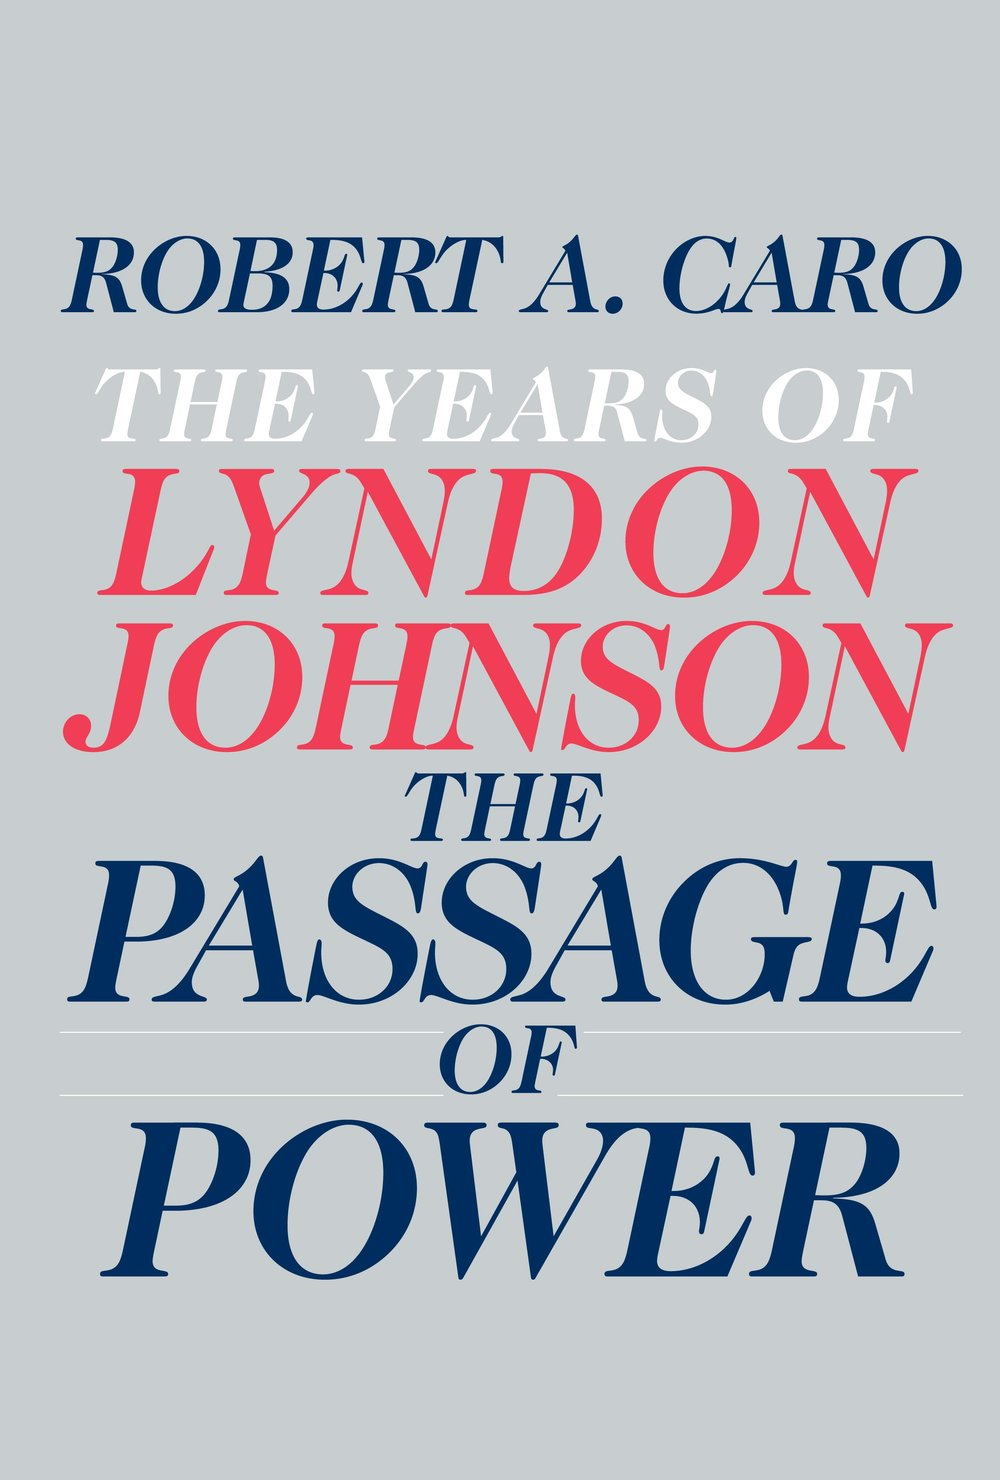 The Passage of Power  by robert a caro.jpg